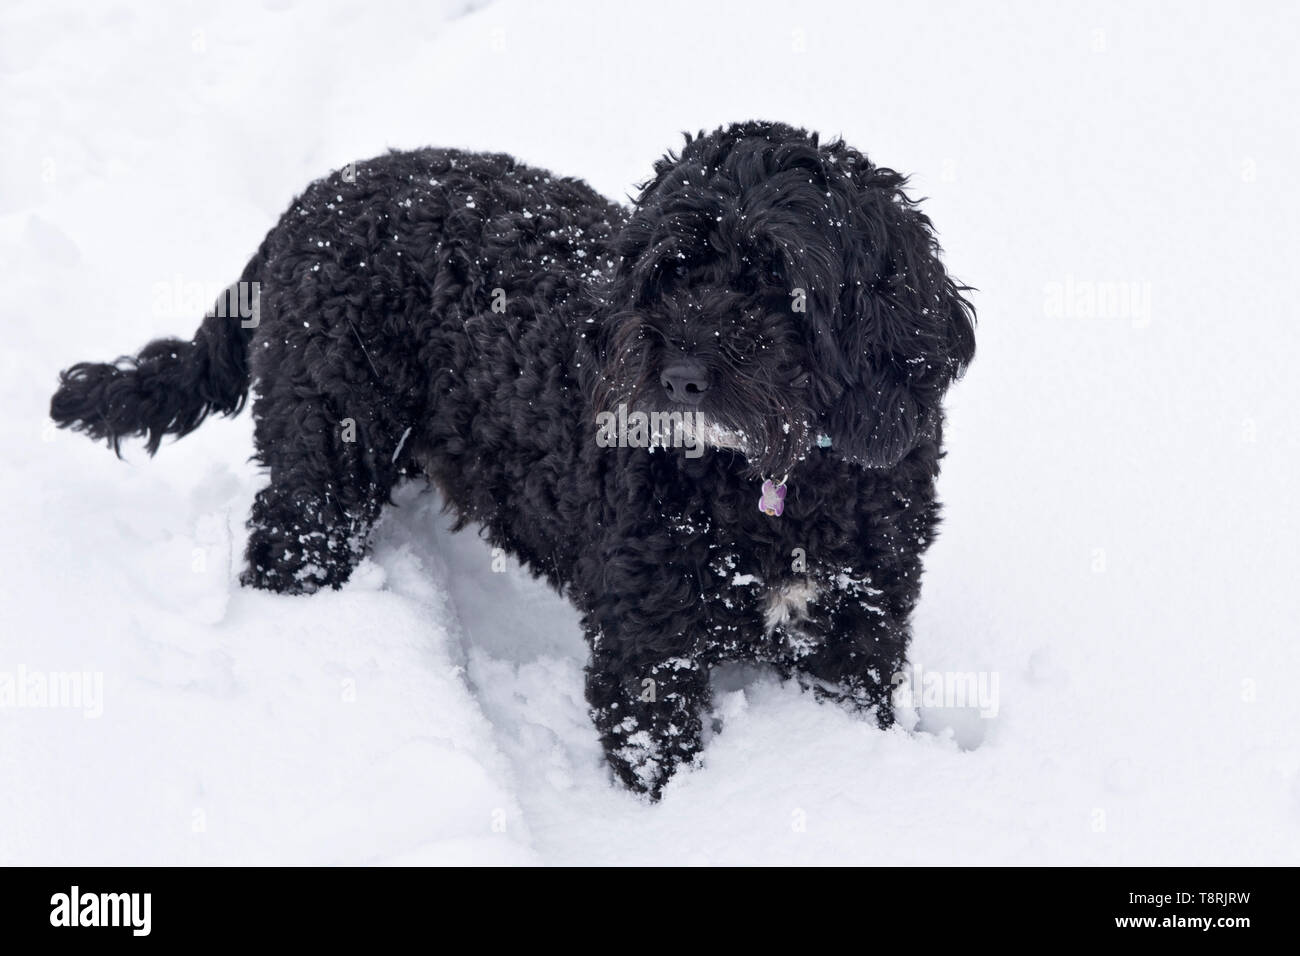 A small black dog, cockerpoo, with his legs buried deep in a fresh layer of white snow, Berkshire, February - Stock Image